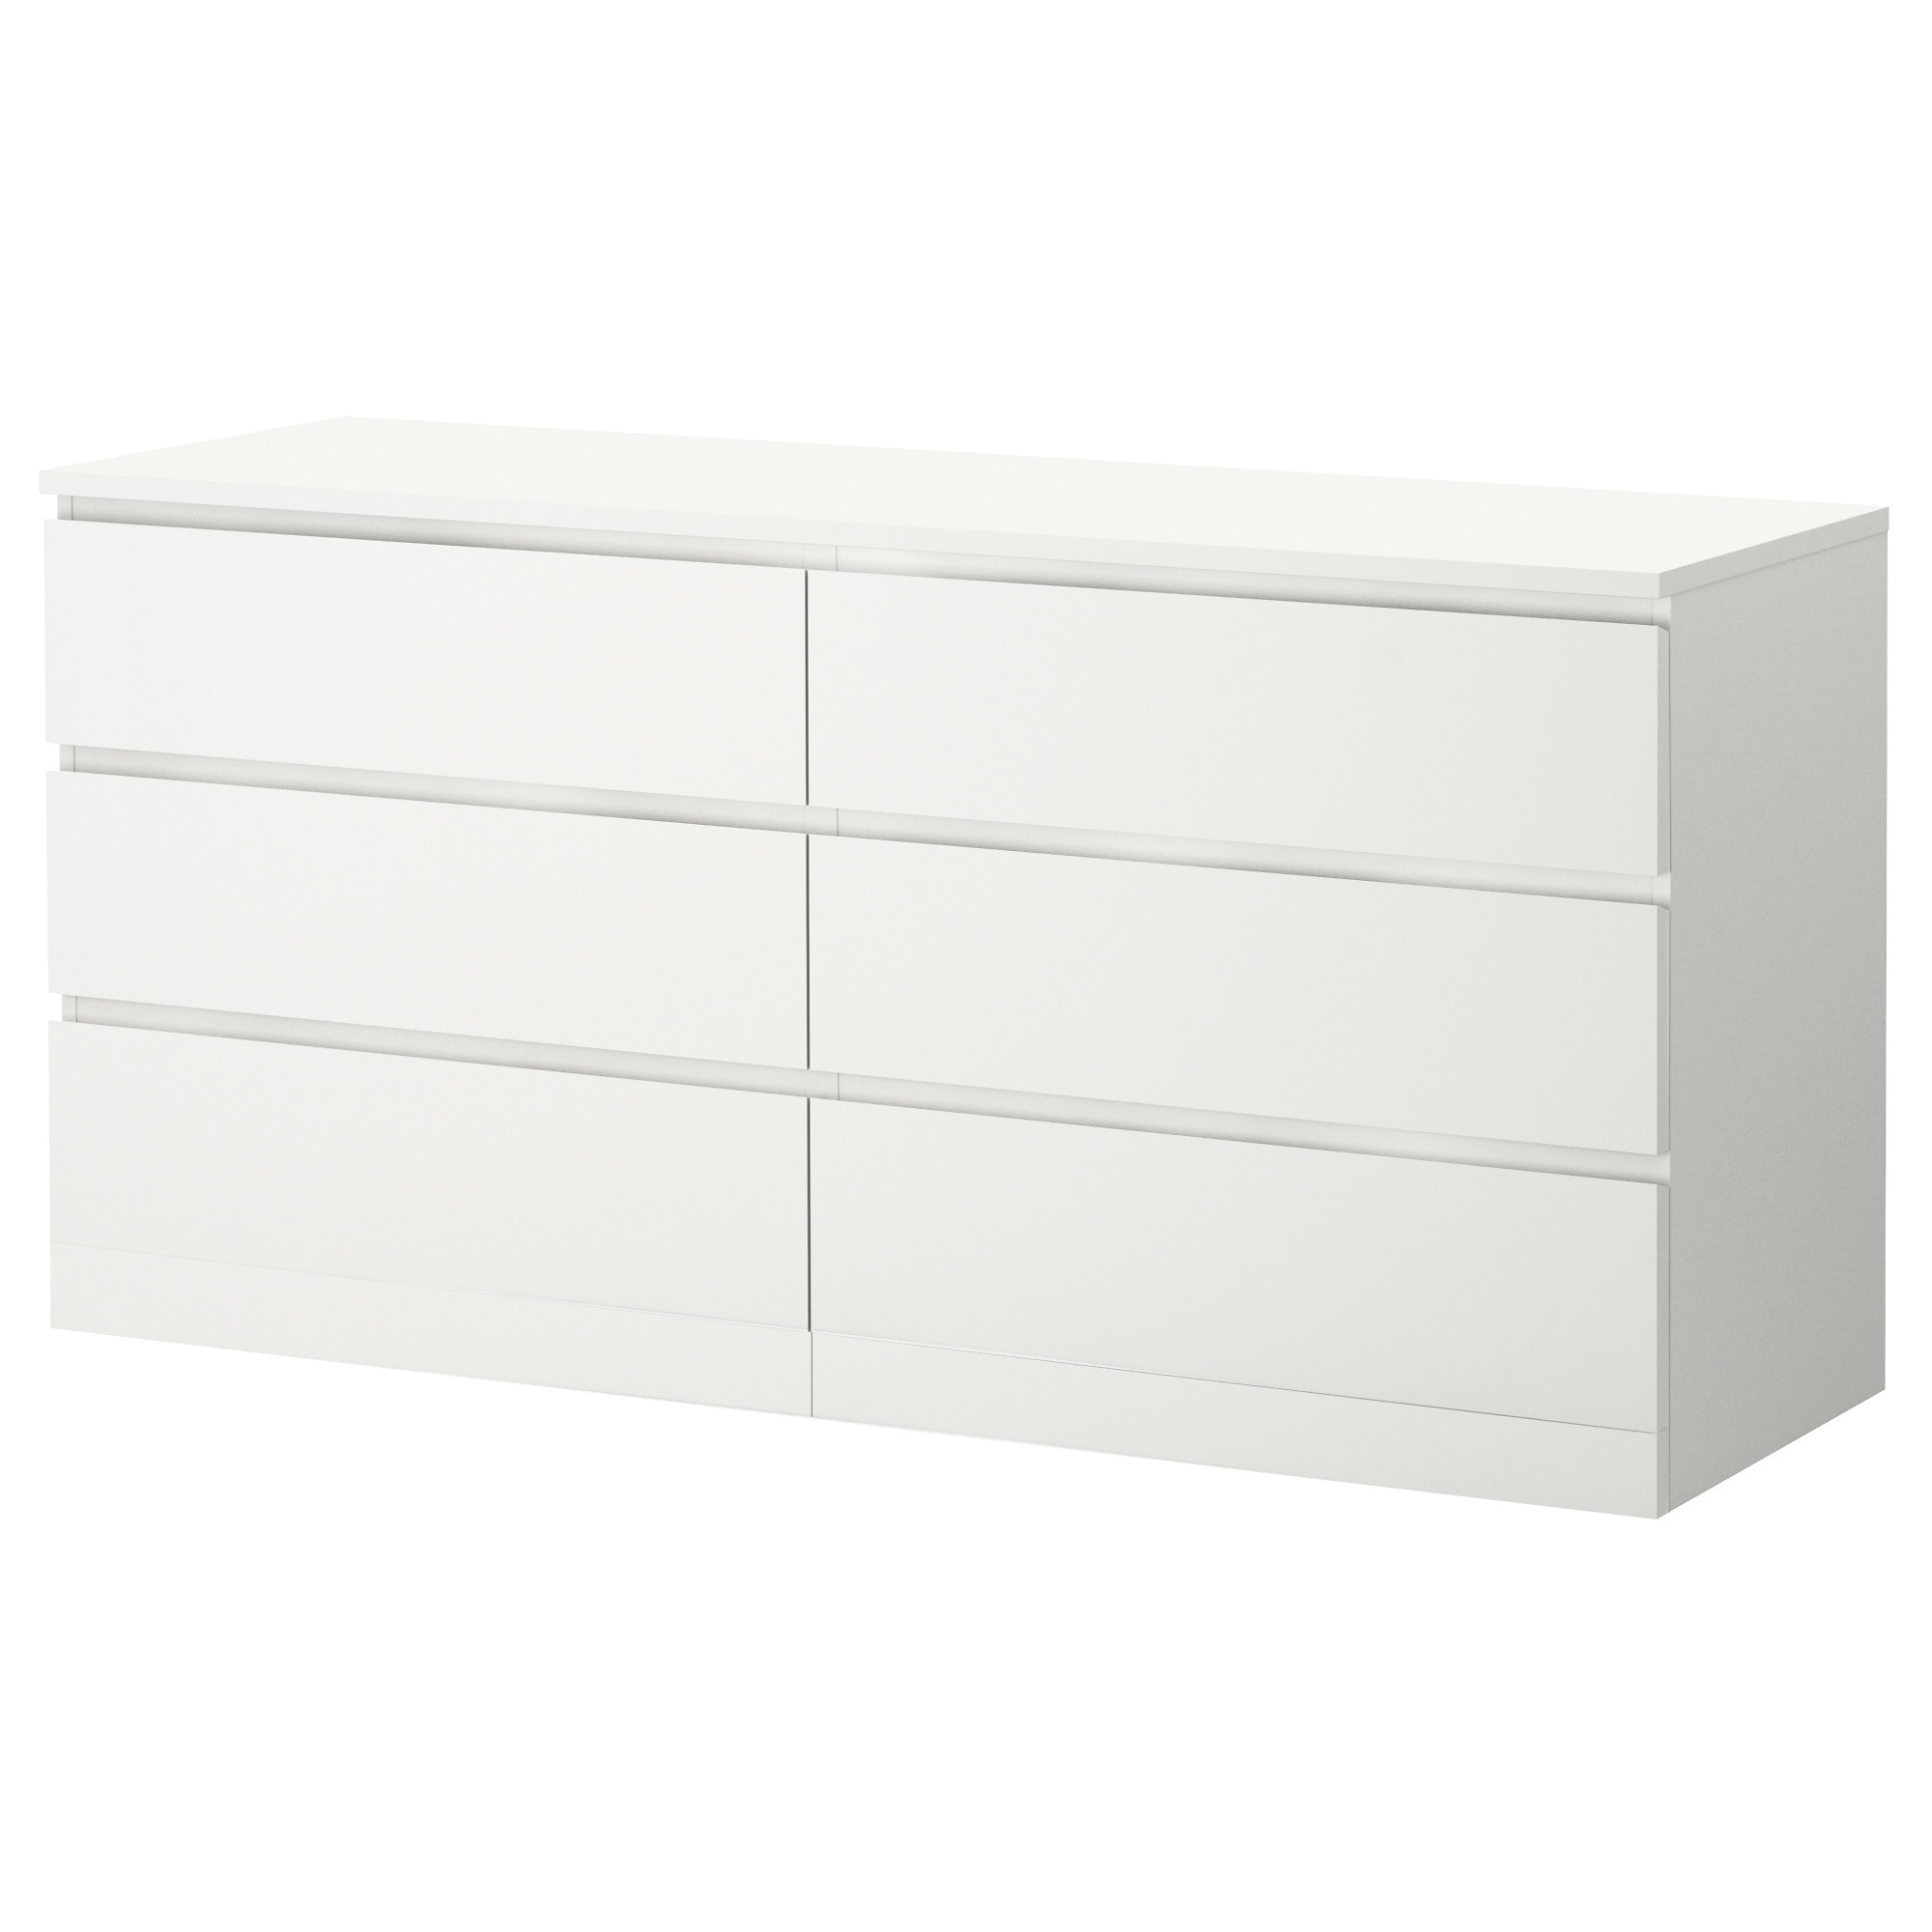 . MALM 6 drawer dresser   white   IKEA